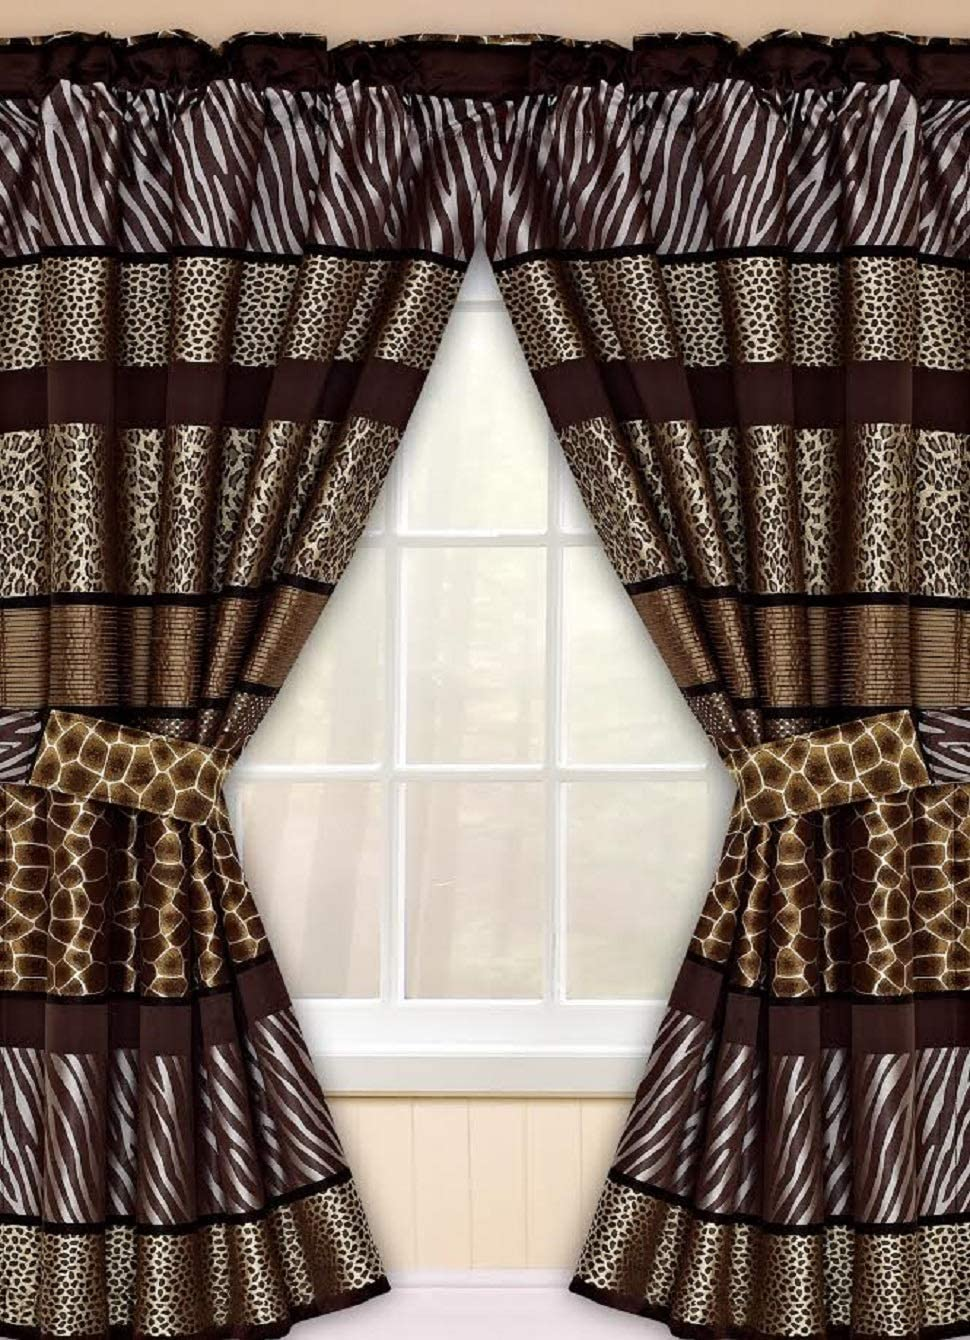 Popular Bath 781212 Safari Stripes, Window Curtain, Chocolate